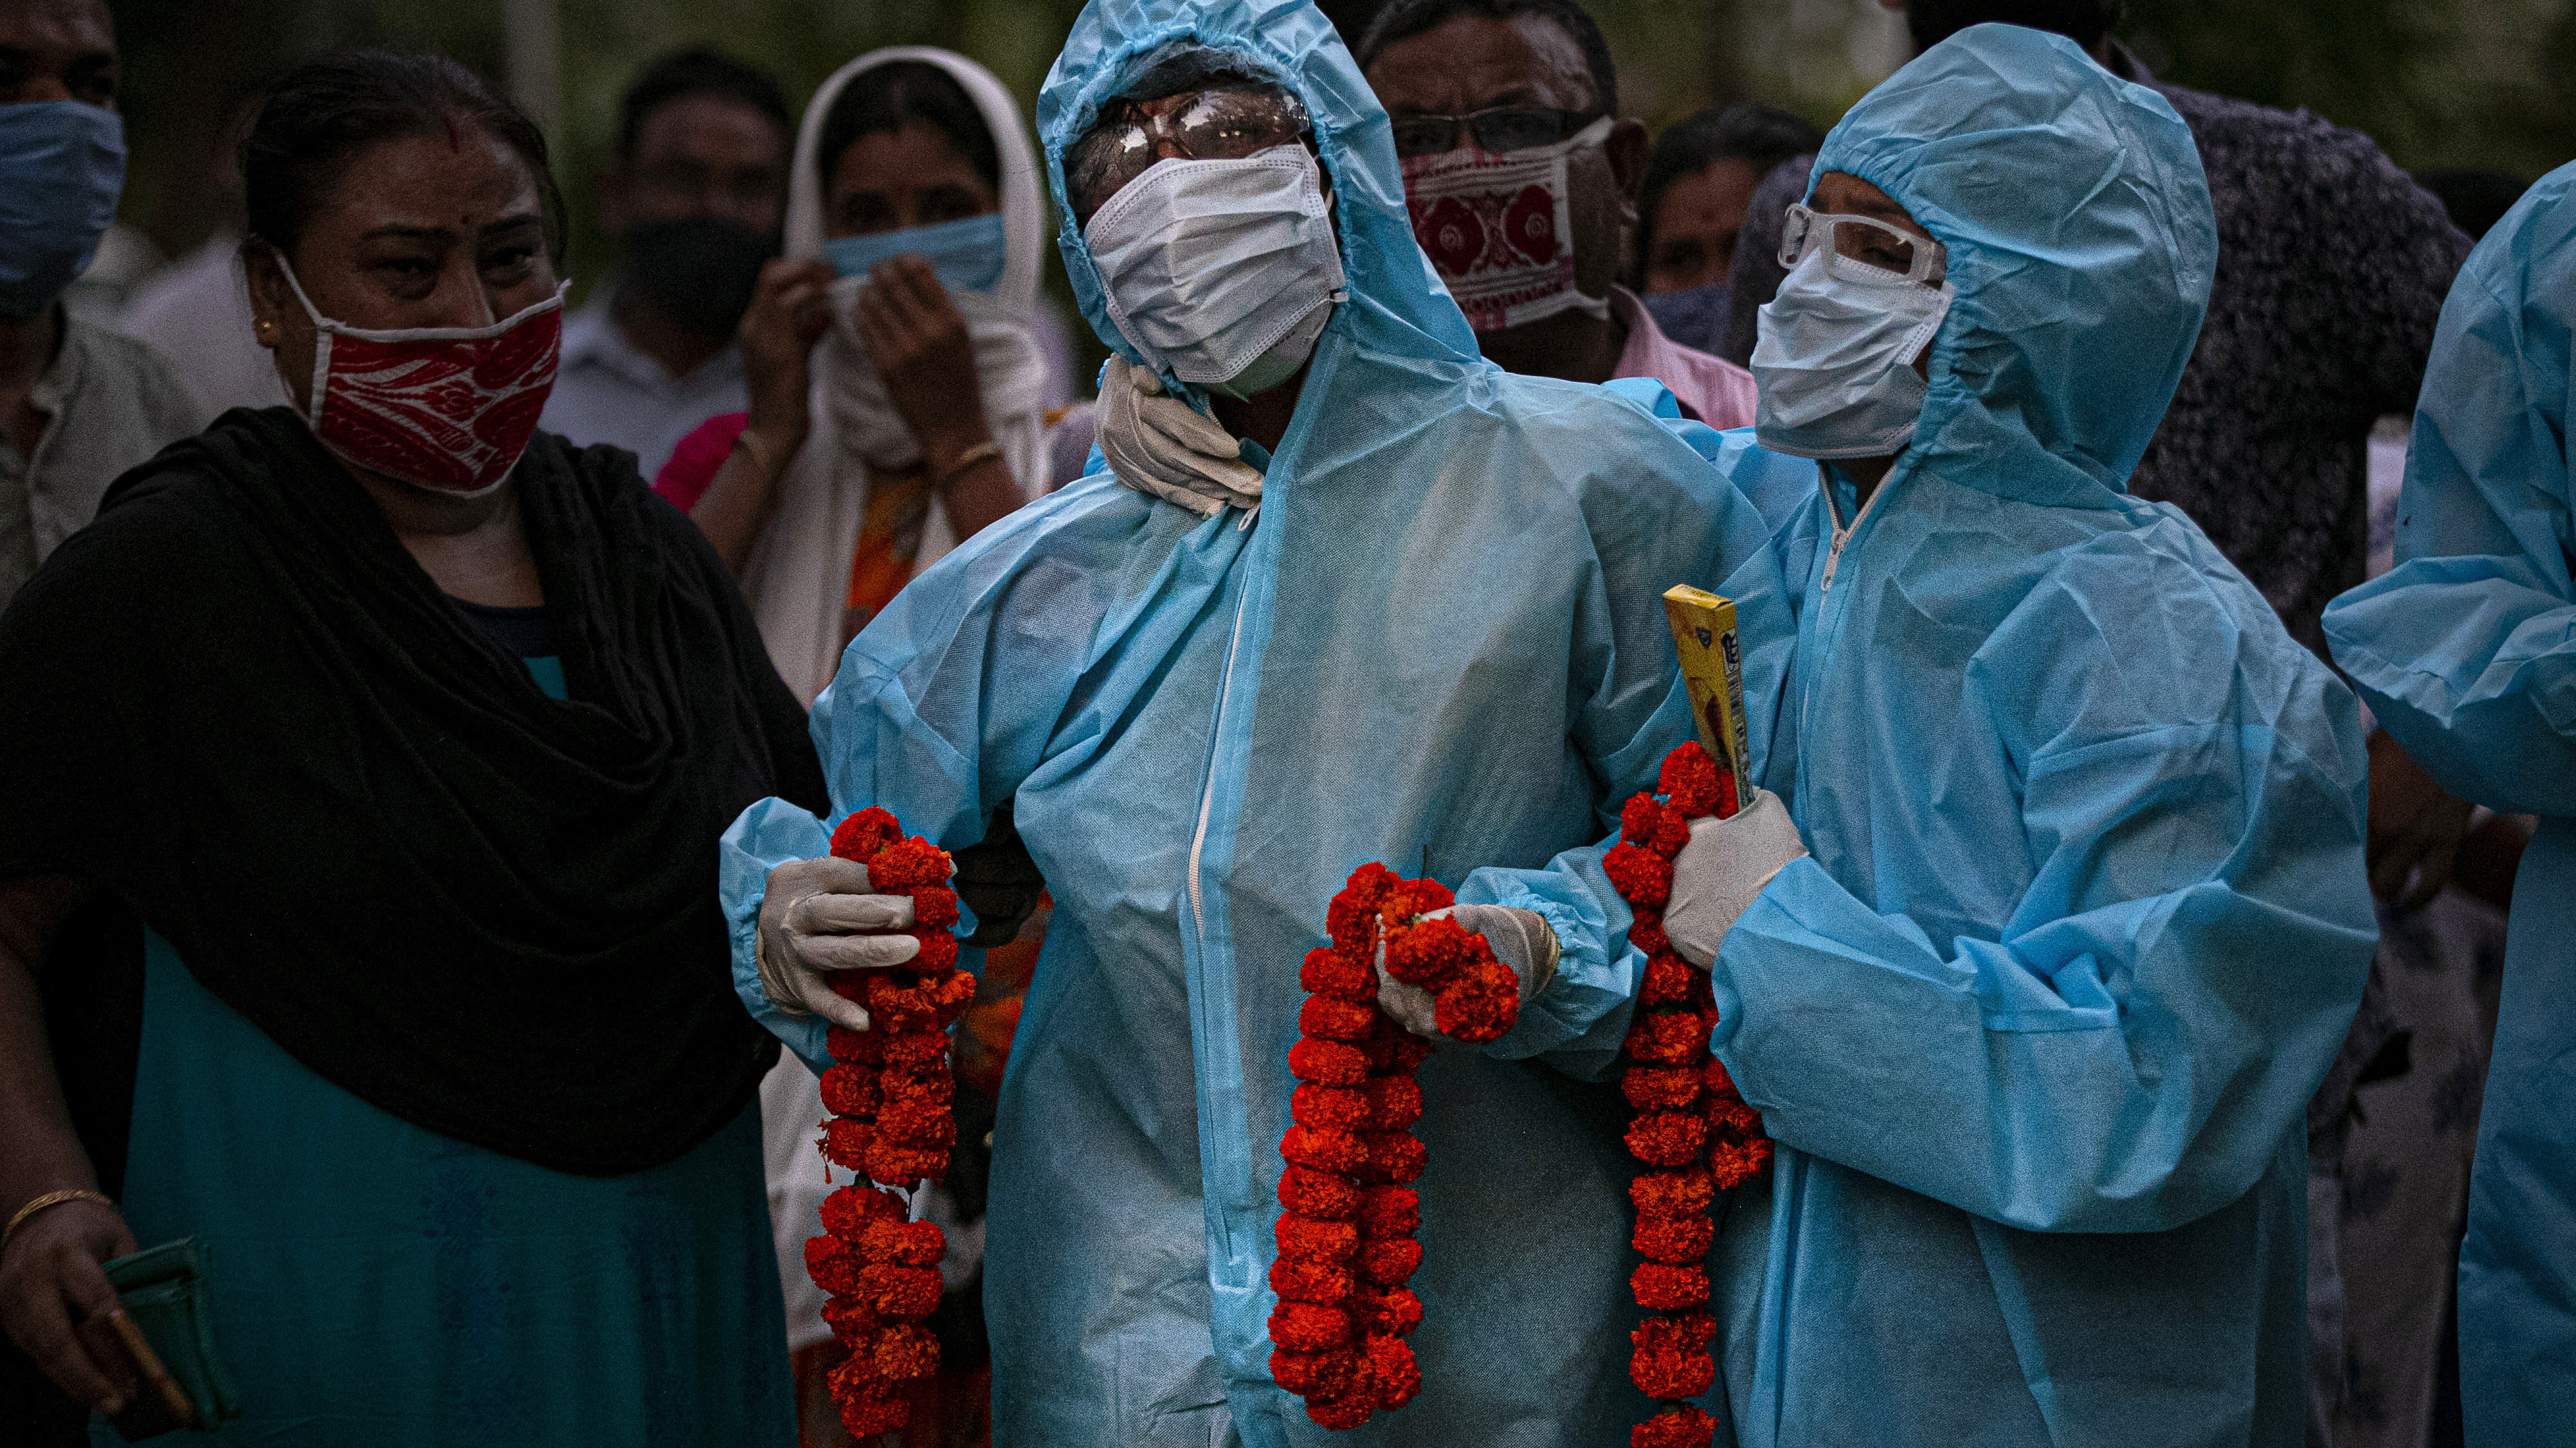 Relatives assist an Indian woman in personal protective equipment offer marigold garlands on the body of her husband  who died of COVID-19 in Gauhati, India,